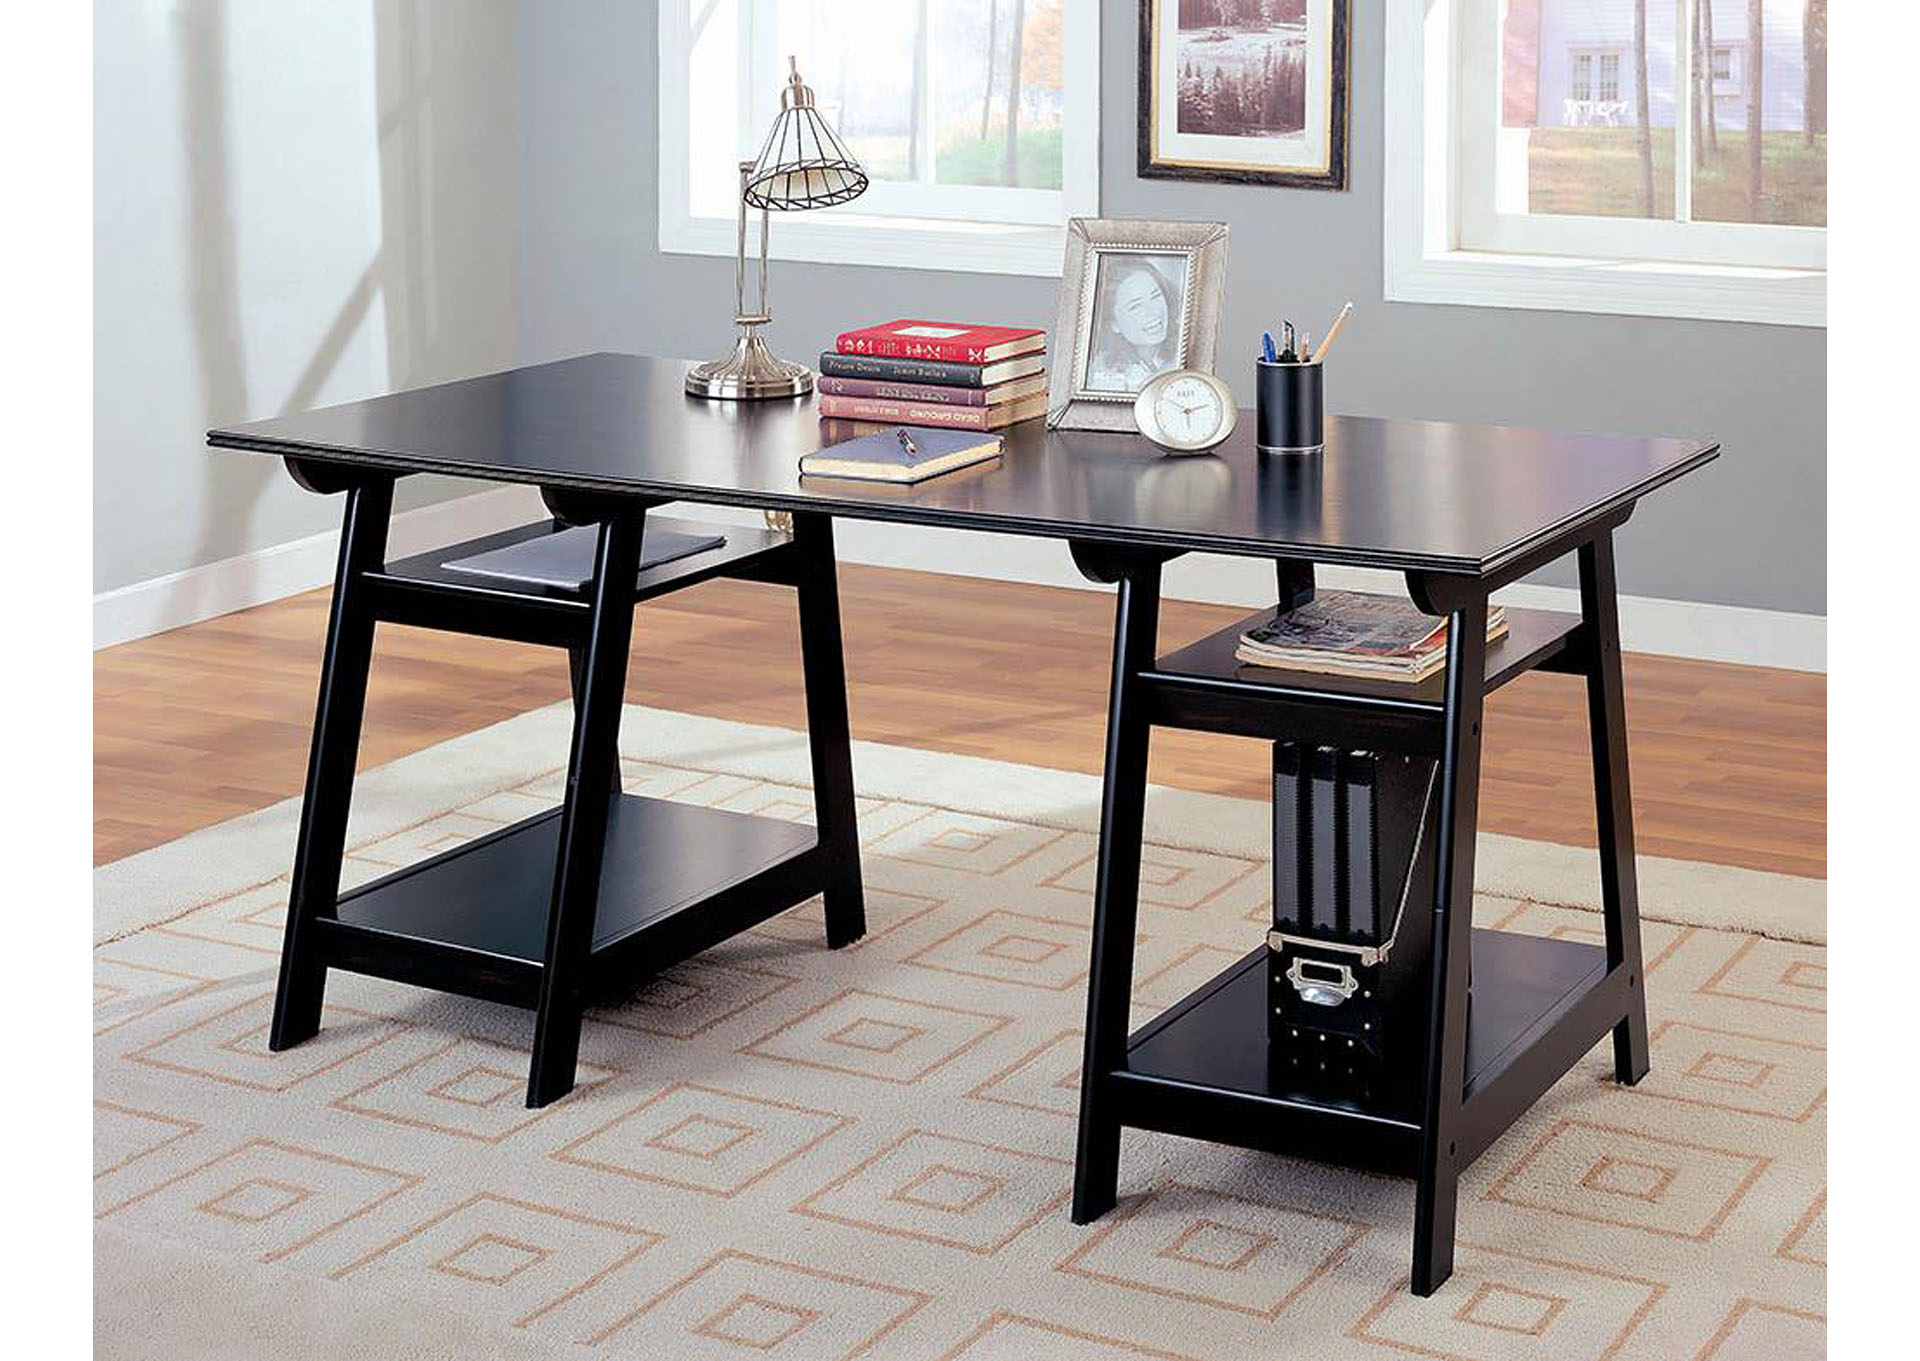 Black Writing Desk,ABF Coaster Furniture